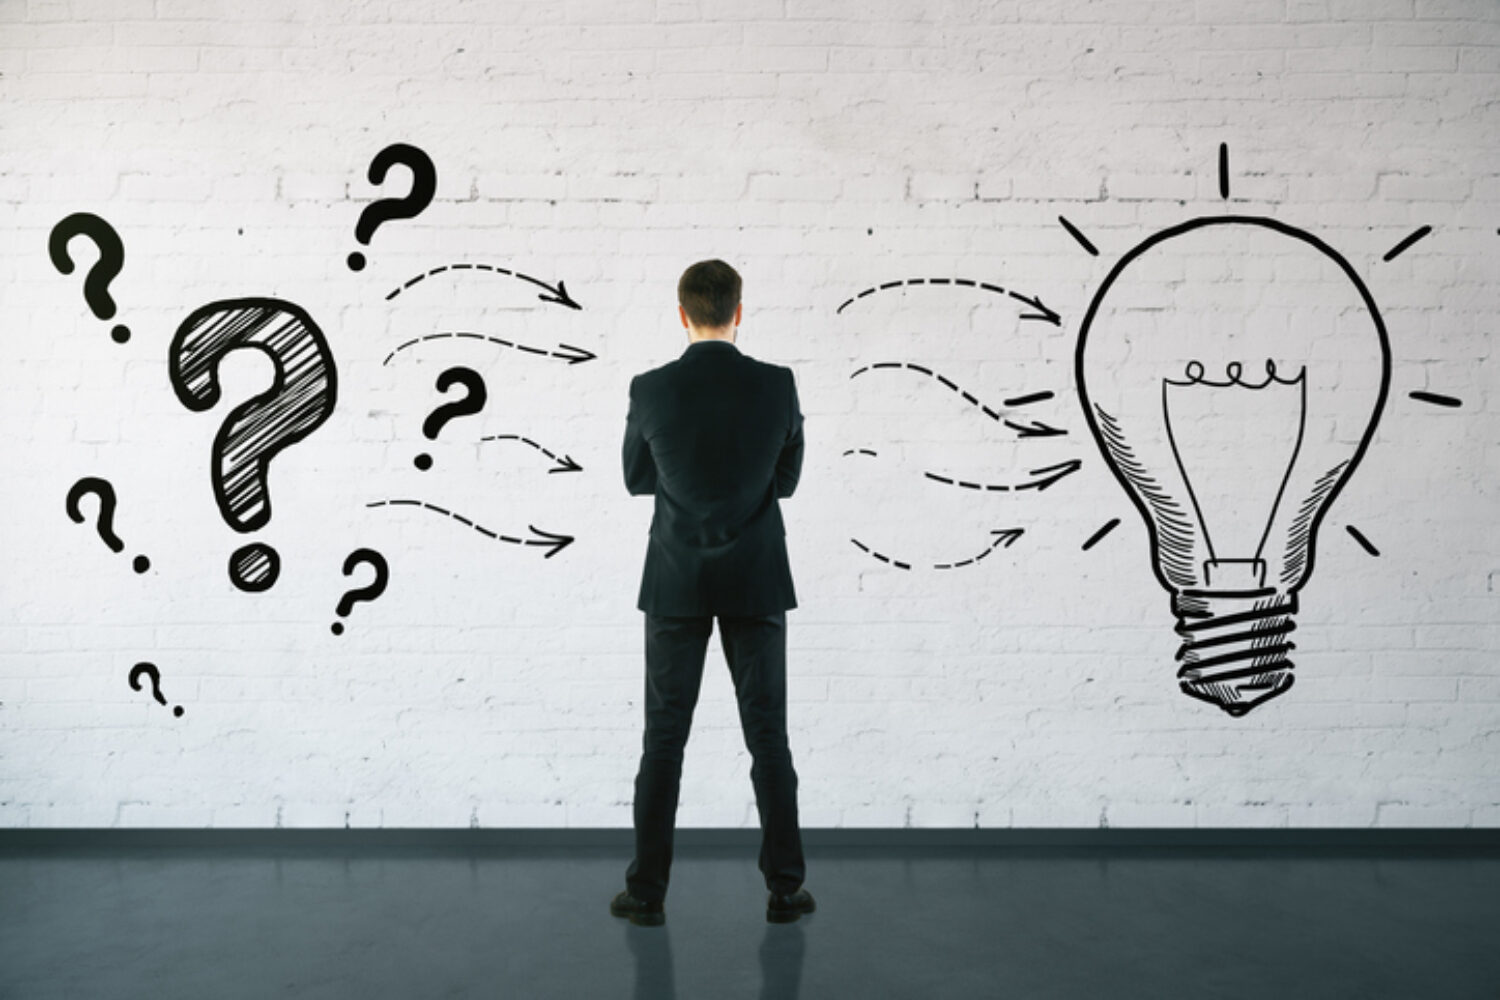 4 Questions That Will Make You A Better Innovator